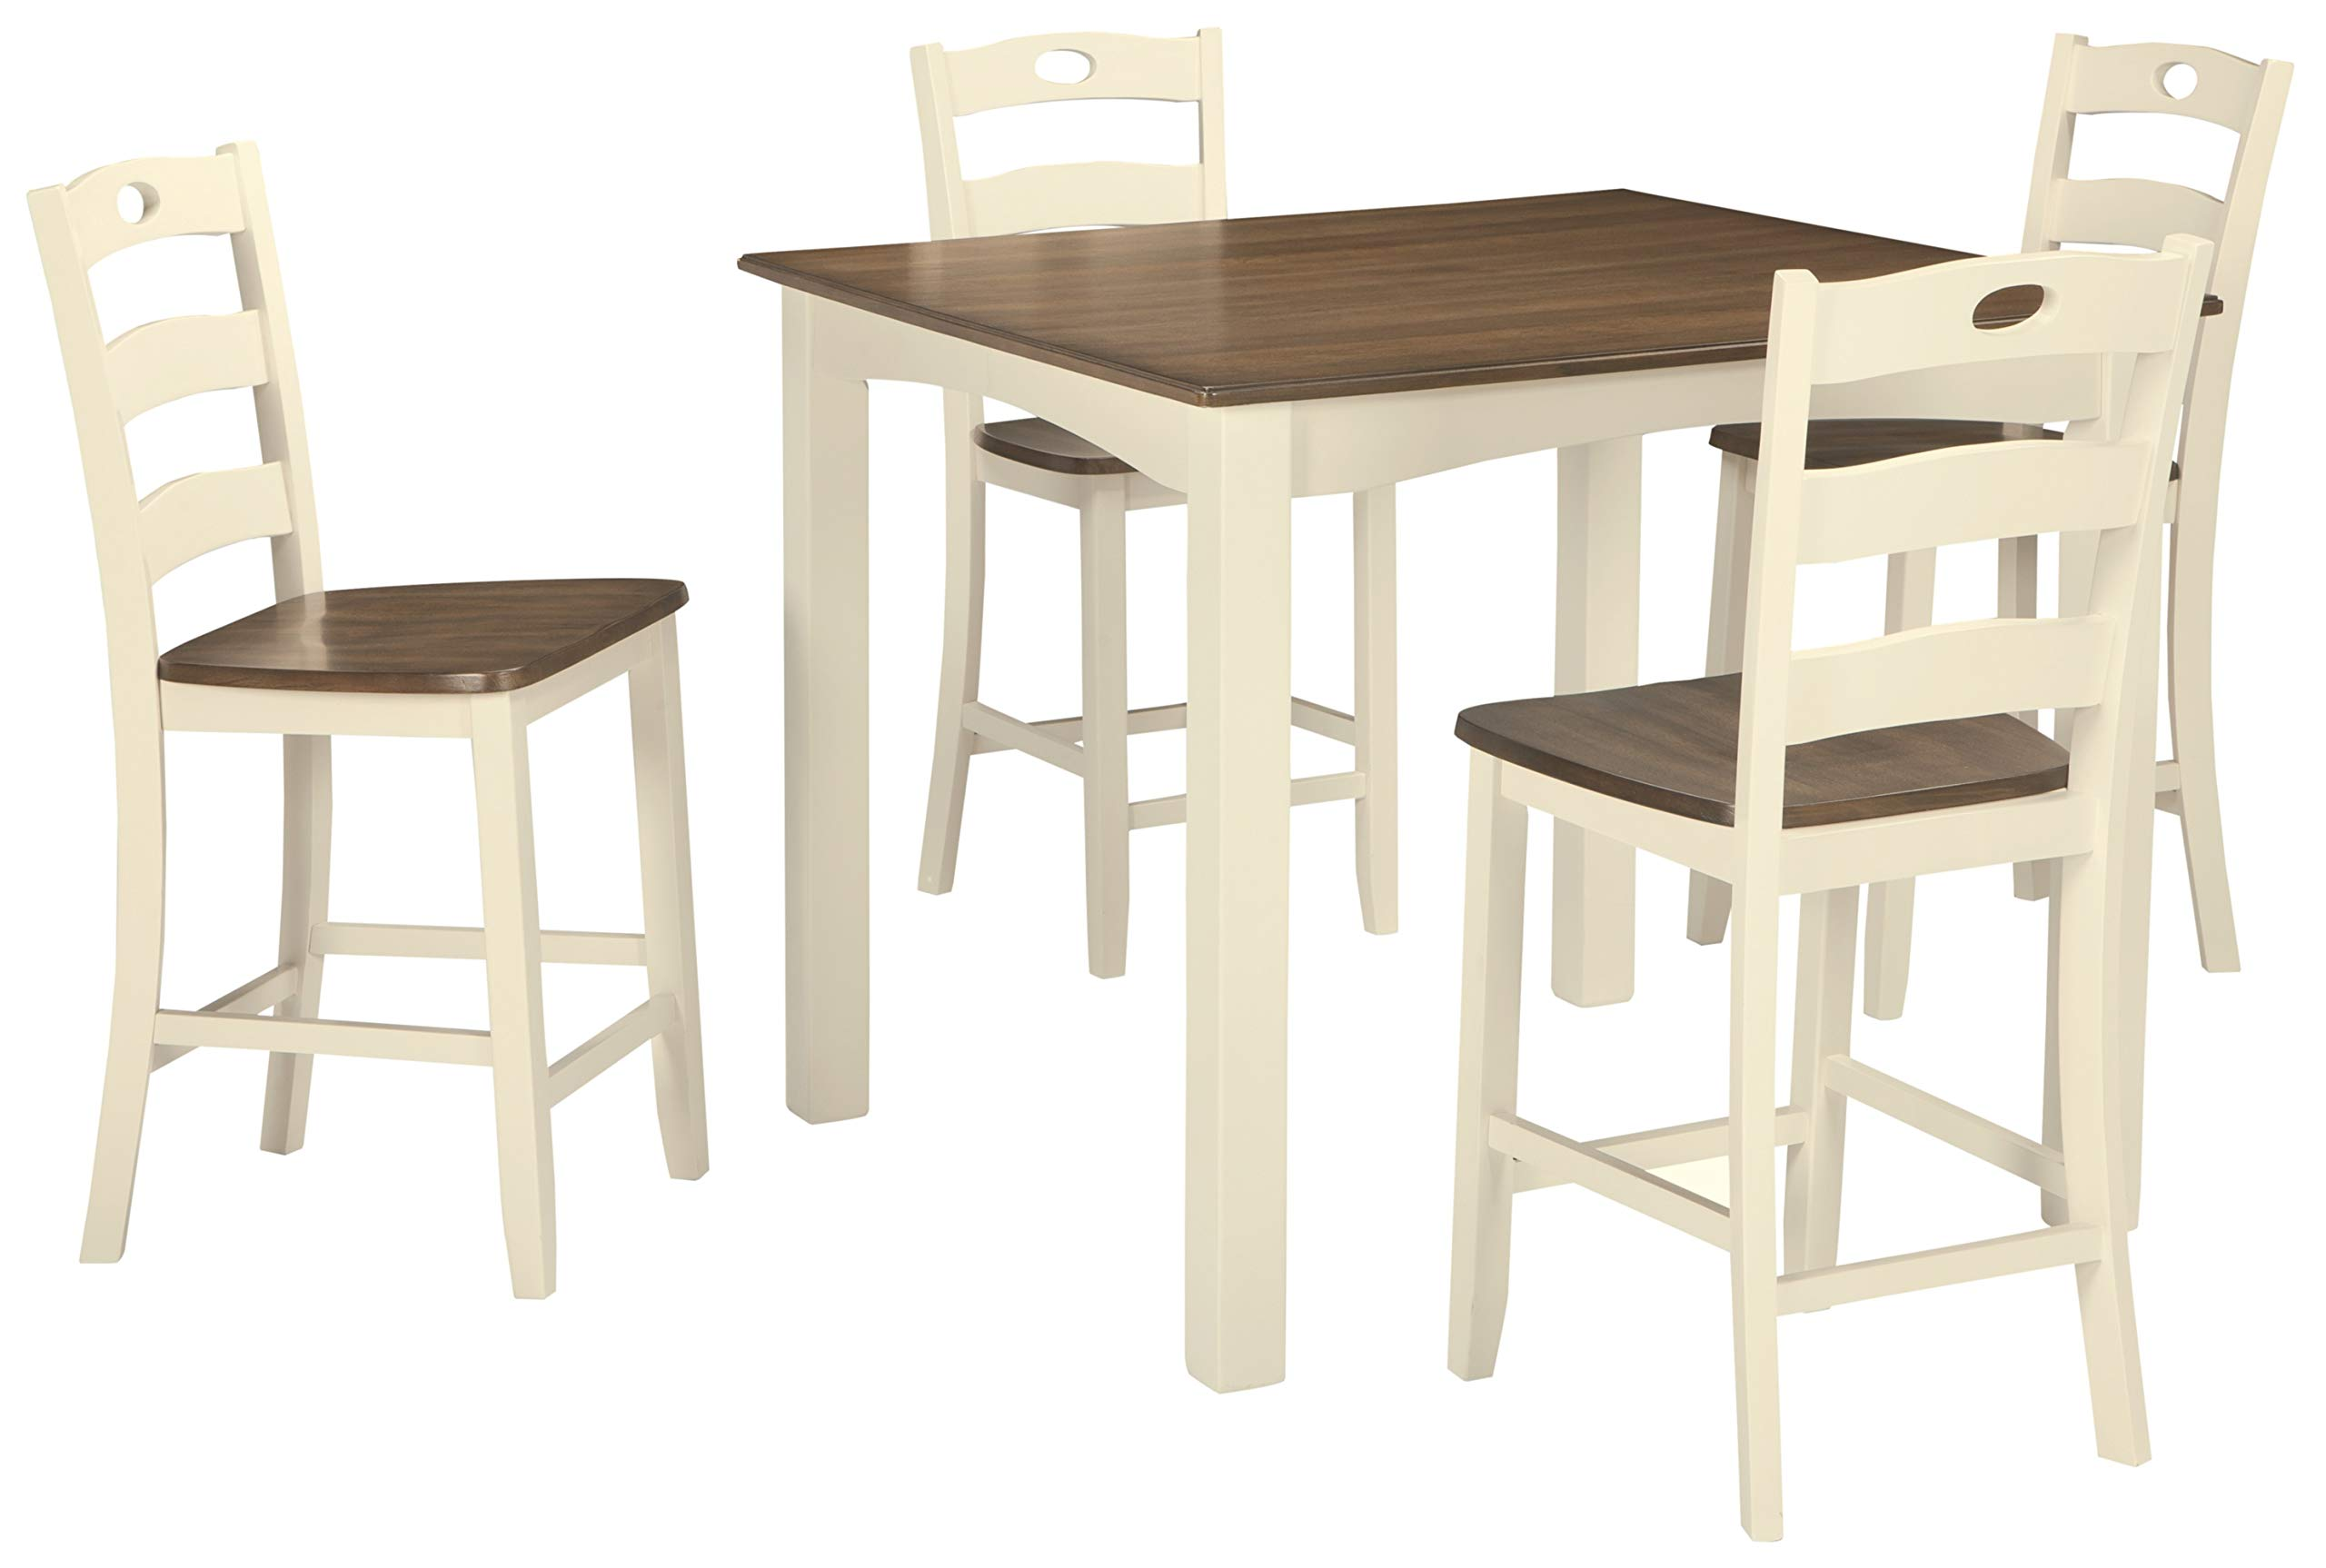 Signature Design by Ashley D335-223 Woodanville Counter Height Dining Room Table and Bar Stools (Set of 5) Cream/Brown by Signature Design by Ashley (Image #1)